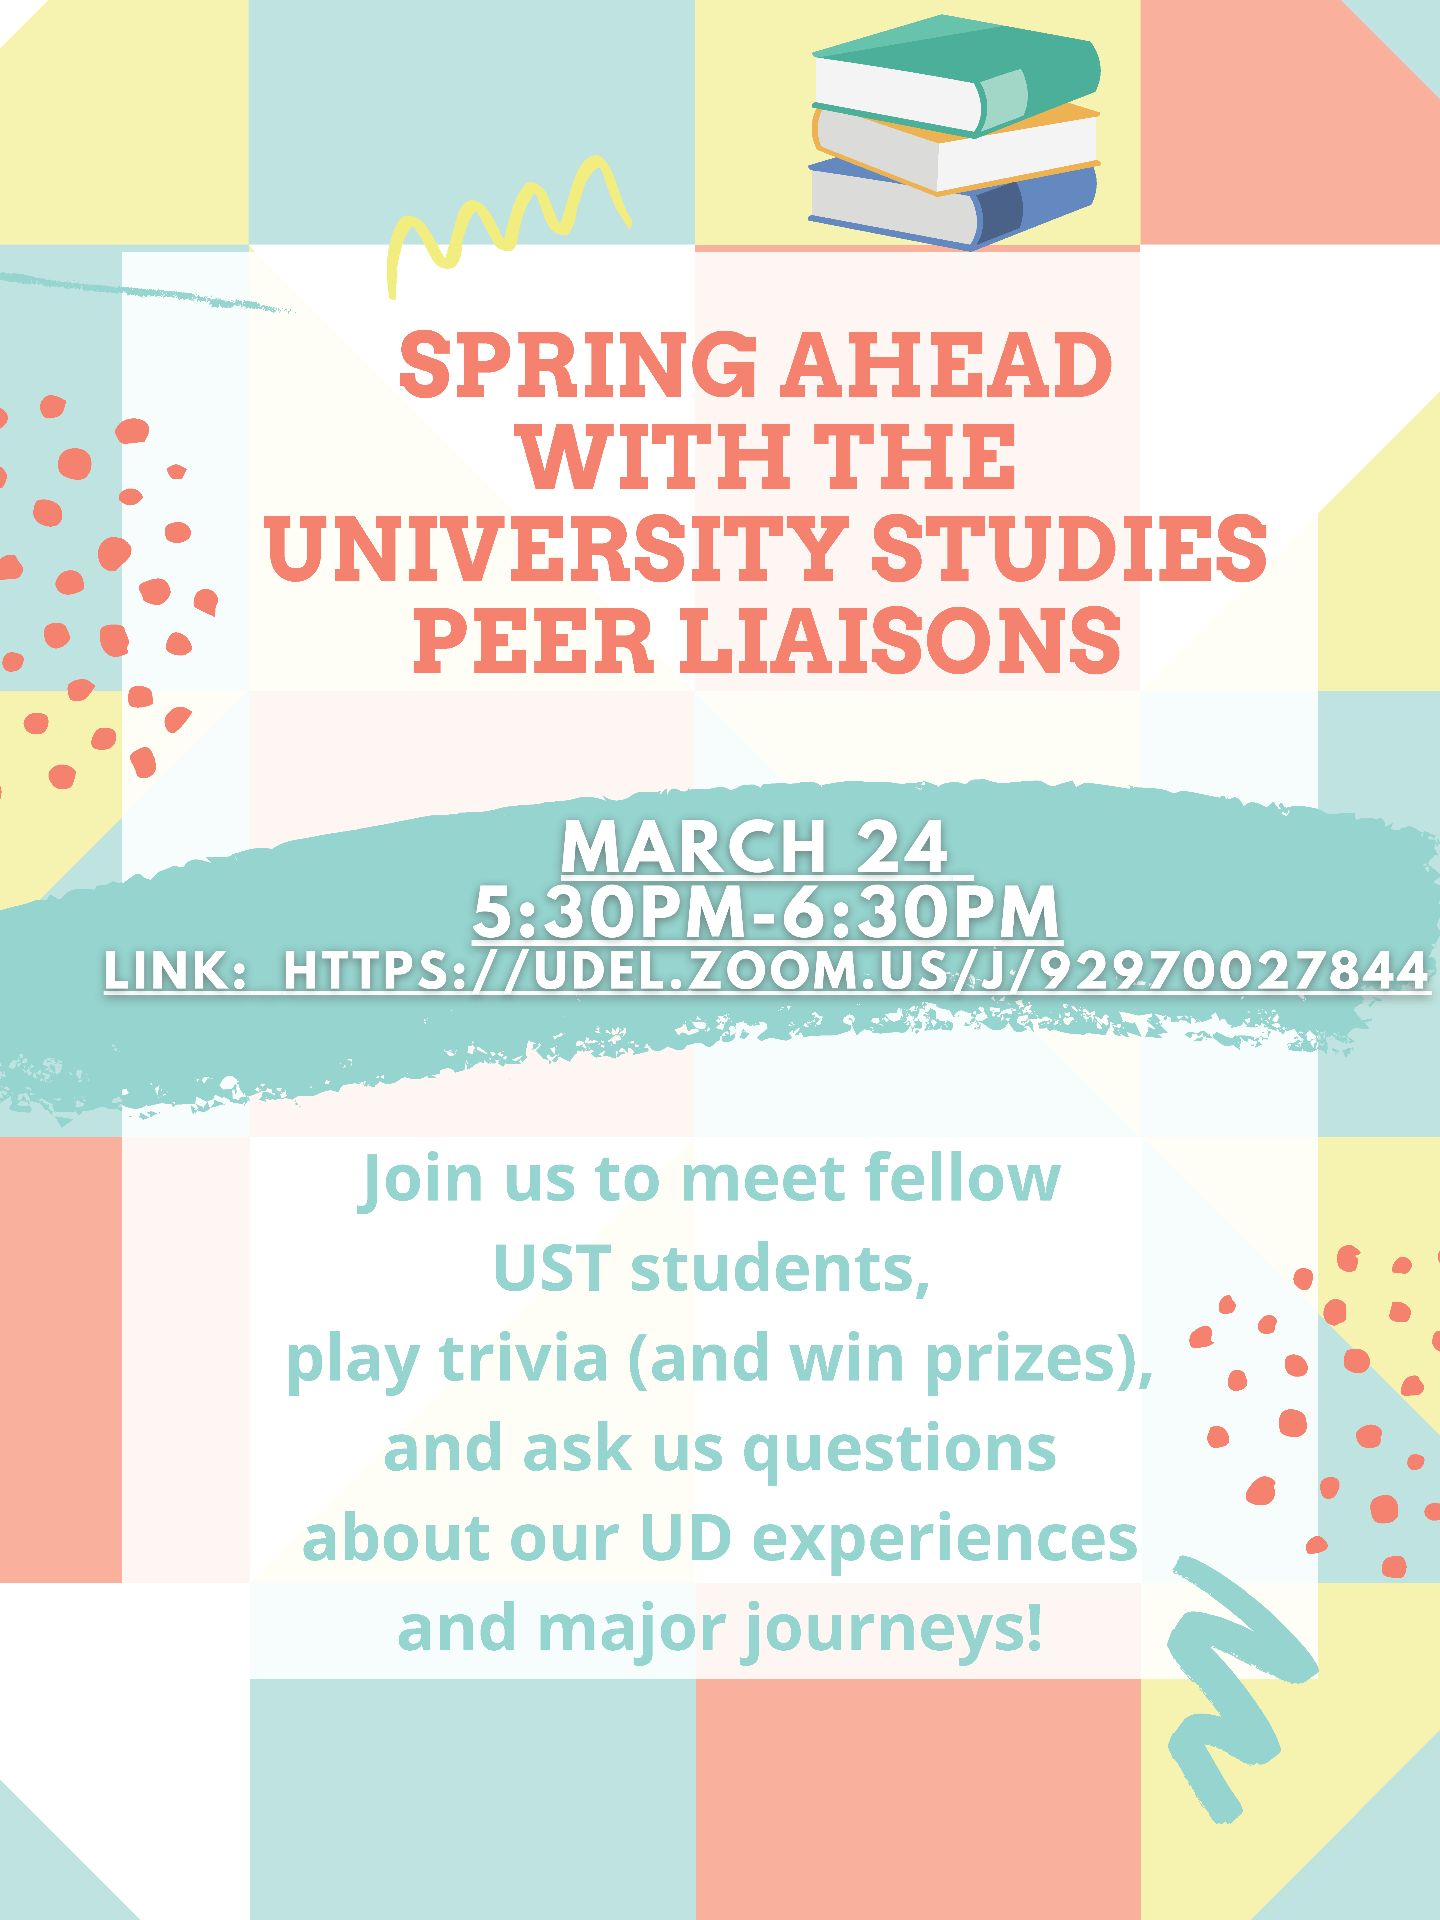 SPRING AHEAD WITH THE UNIVERSITY STUDIES PEER LIAISONS. March 24th 5:30-6:30 PM. Join us to meet fellow UST students, play trivia (and win prizes), and ask us questions about our UD experiences and major journeys!